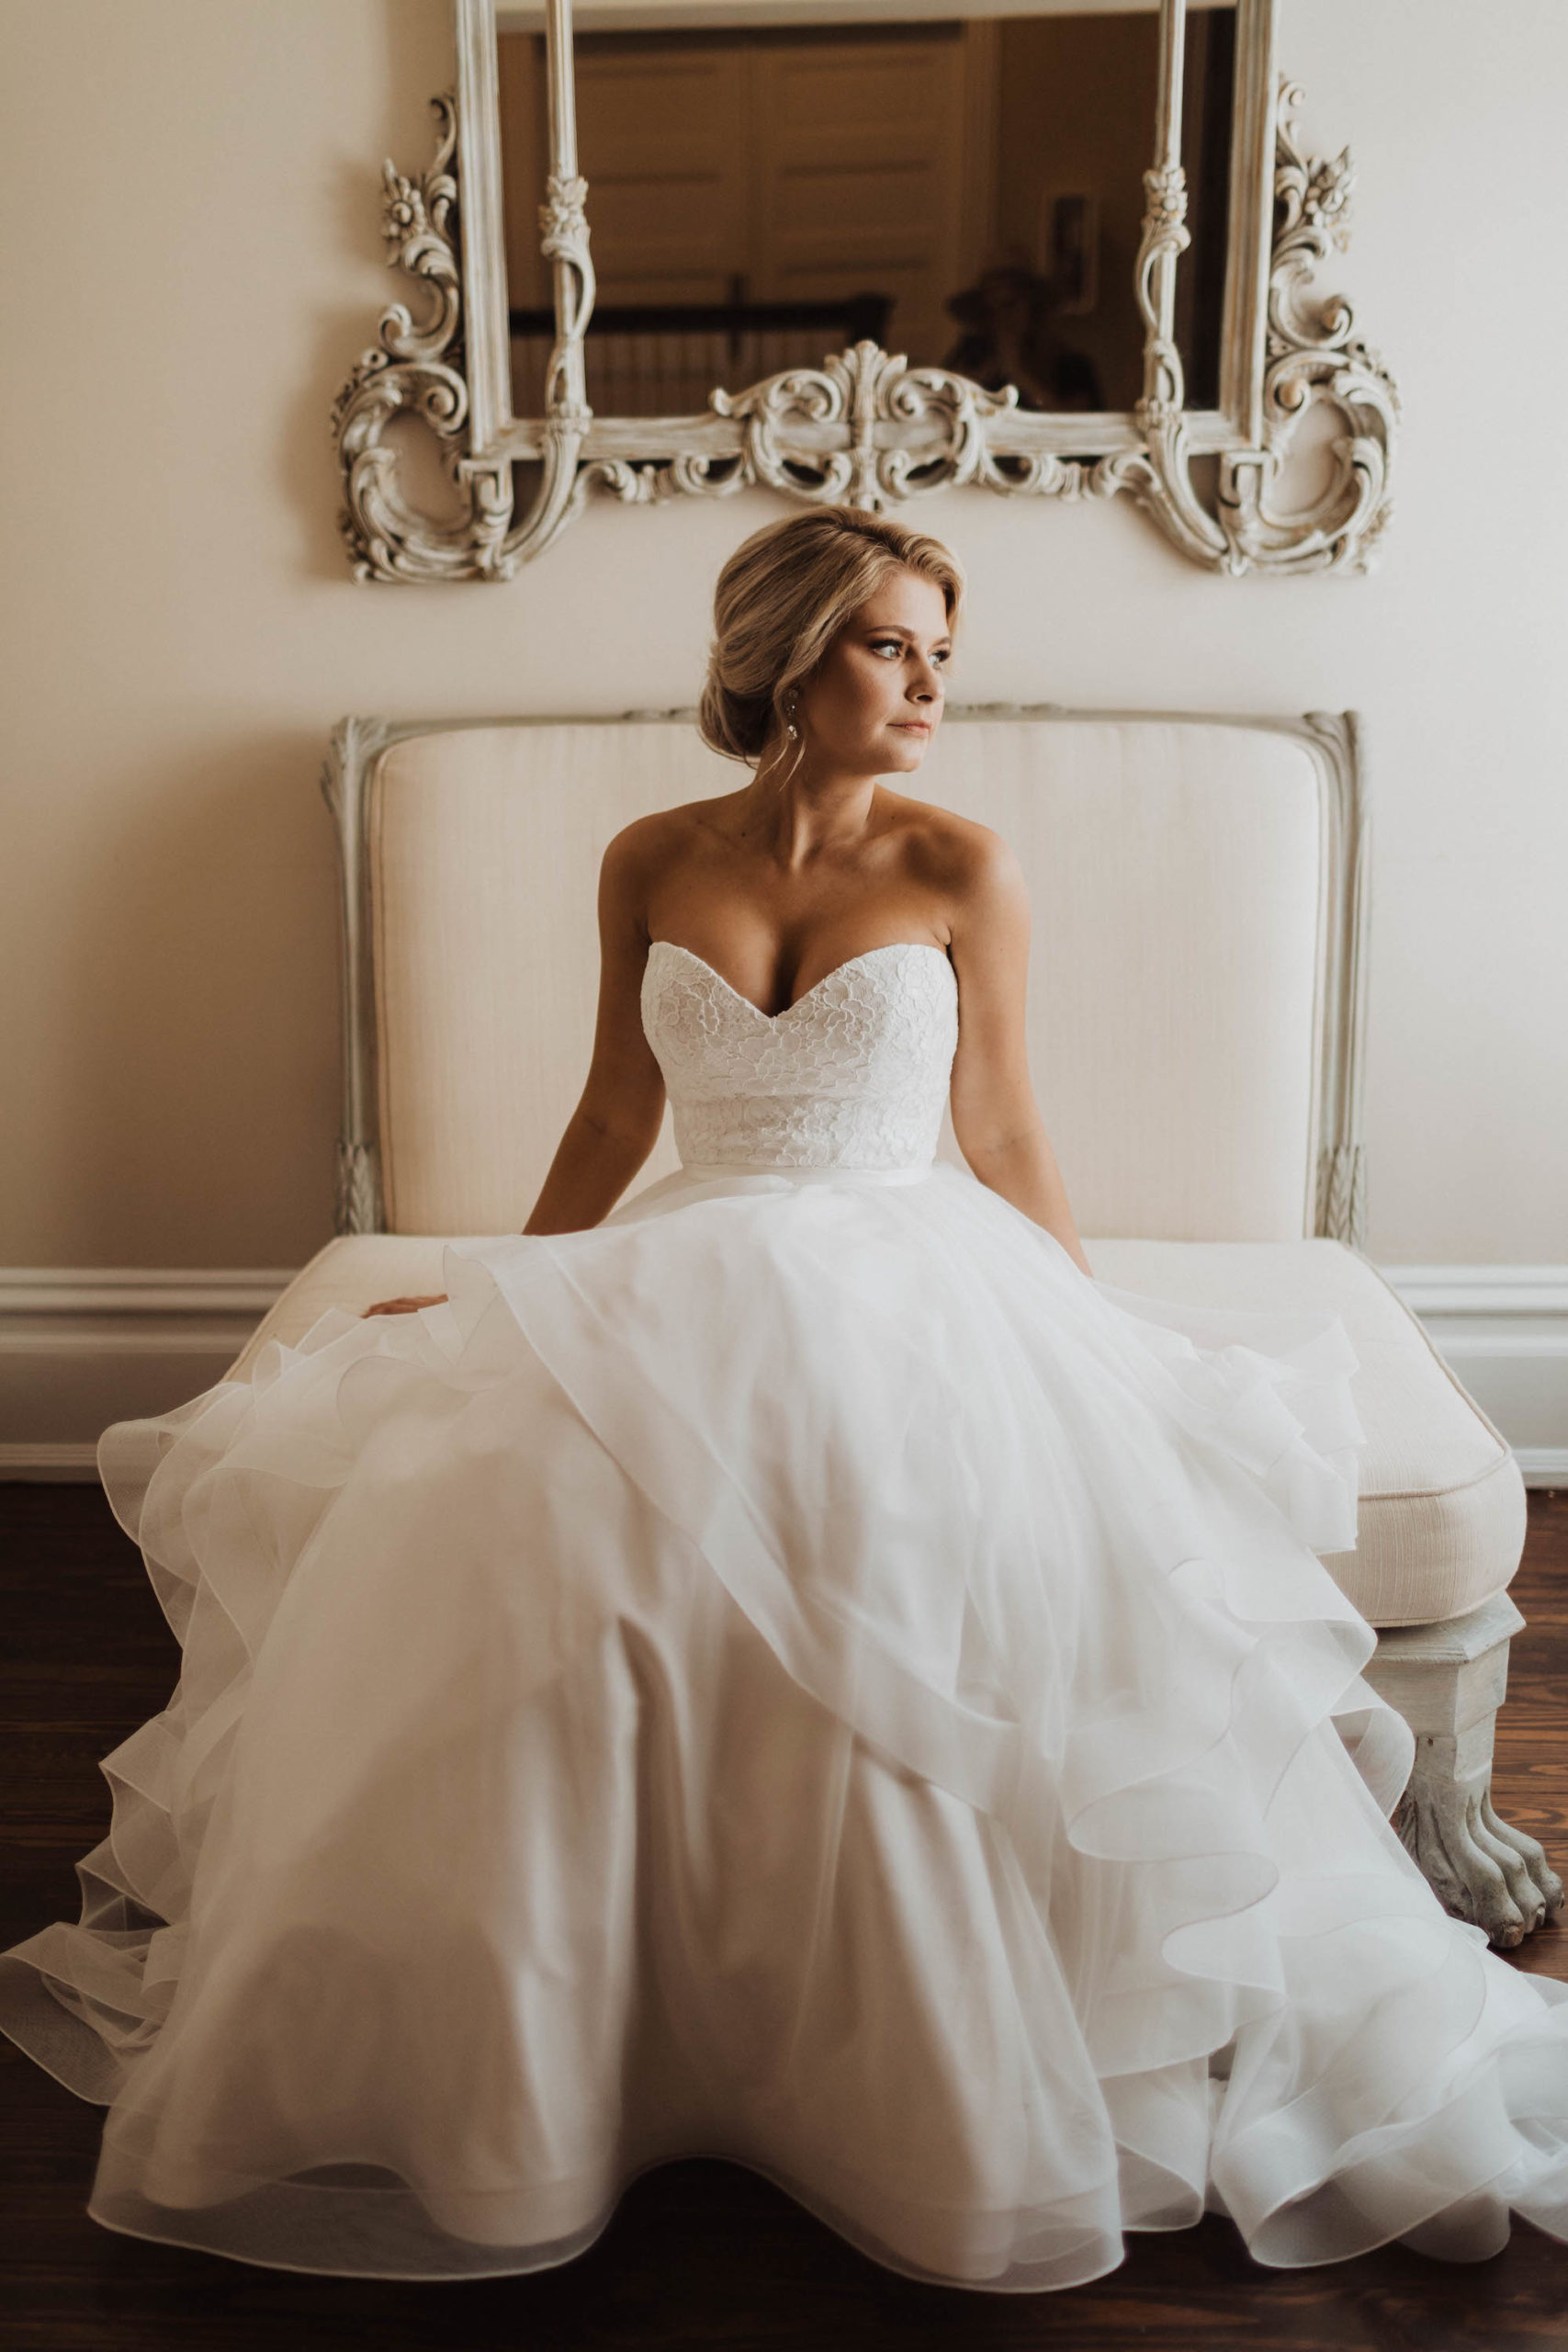 Tampa Bay Bride Beauty Wedding Portrait in Mikaella Lace and Mesh Tulle Ballgown Strapless Sweetheart Neckline Cascading Ruffles Wedding Dress